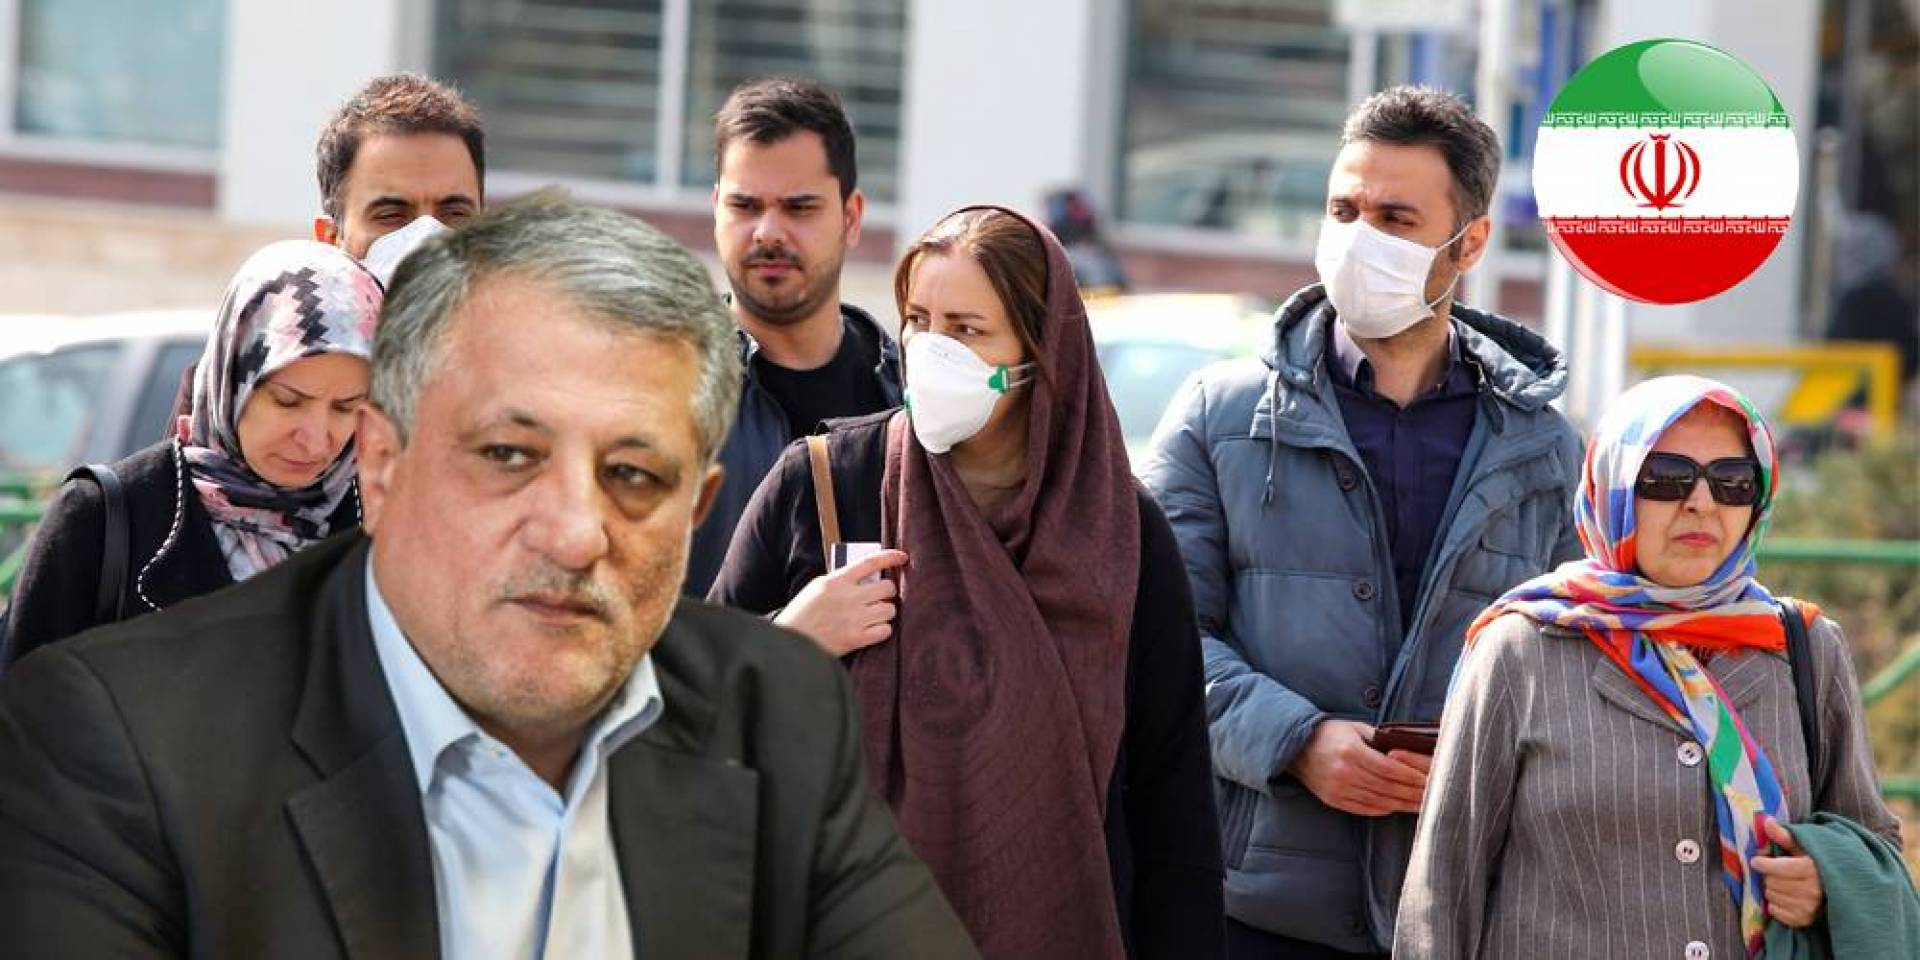 Isolation measures could be imposed on Tehran if coronavirus cases continue to rise